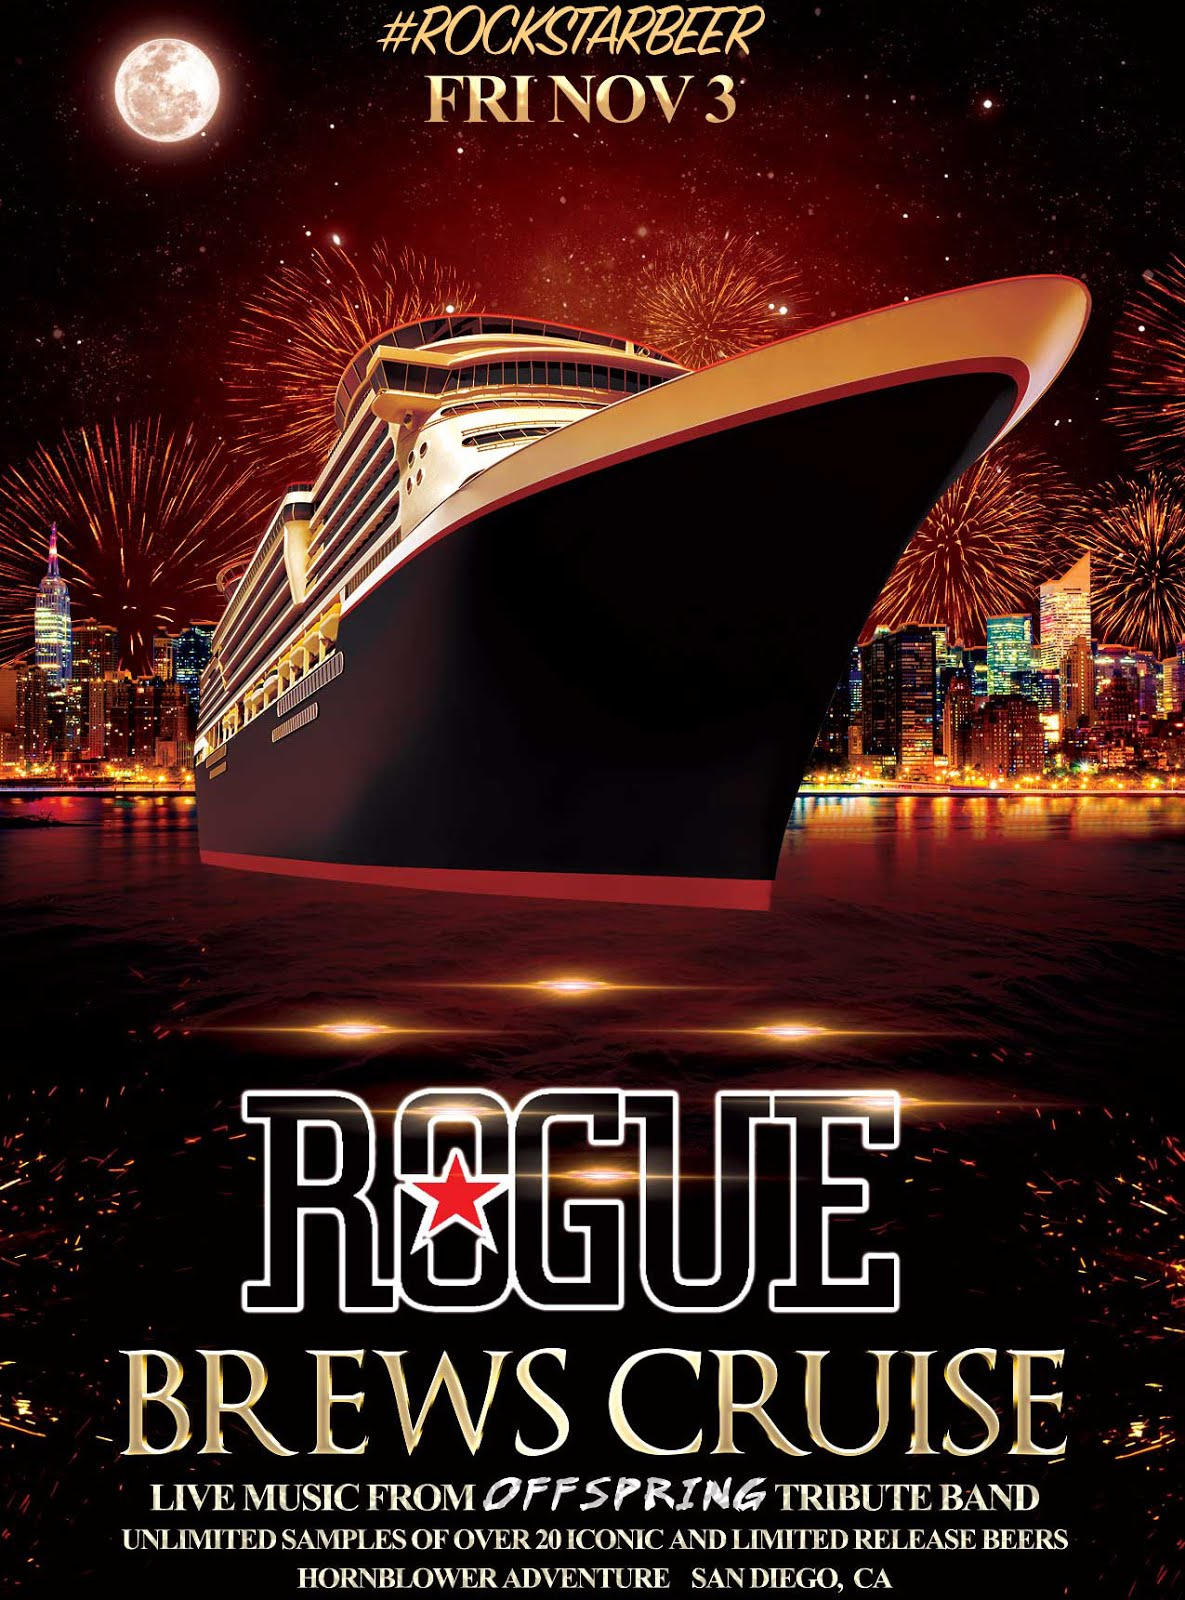 Promo code SDVILLE saves $5 per ticket to the Rogue Brews Cruise - November 3!